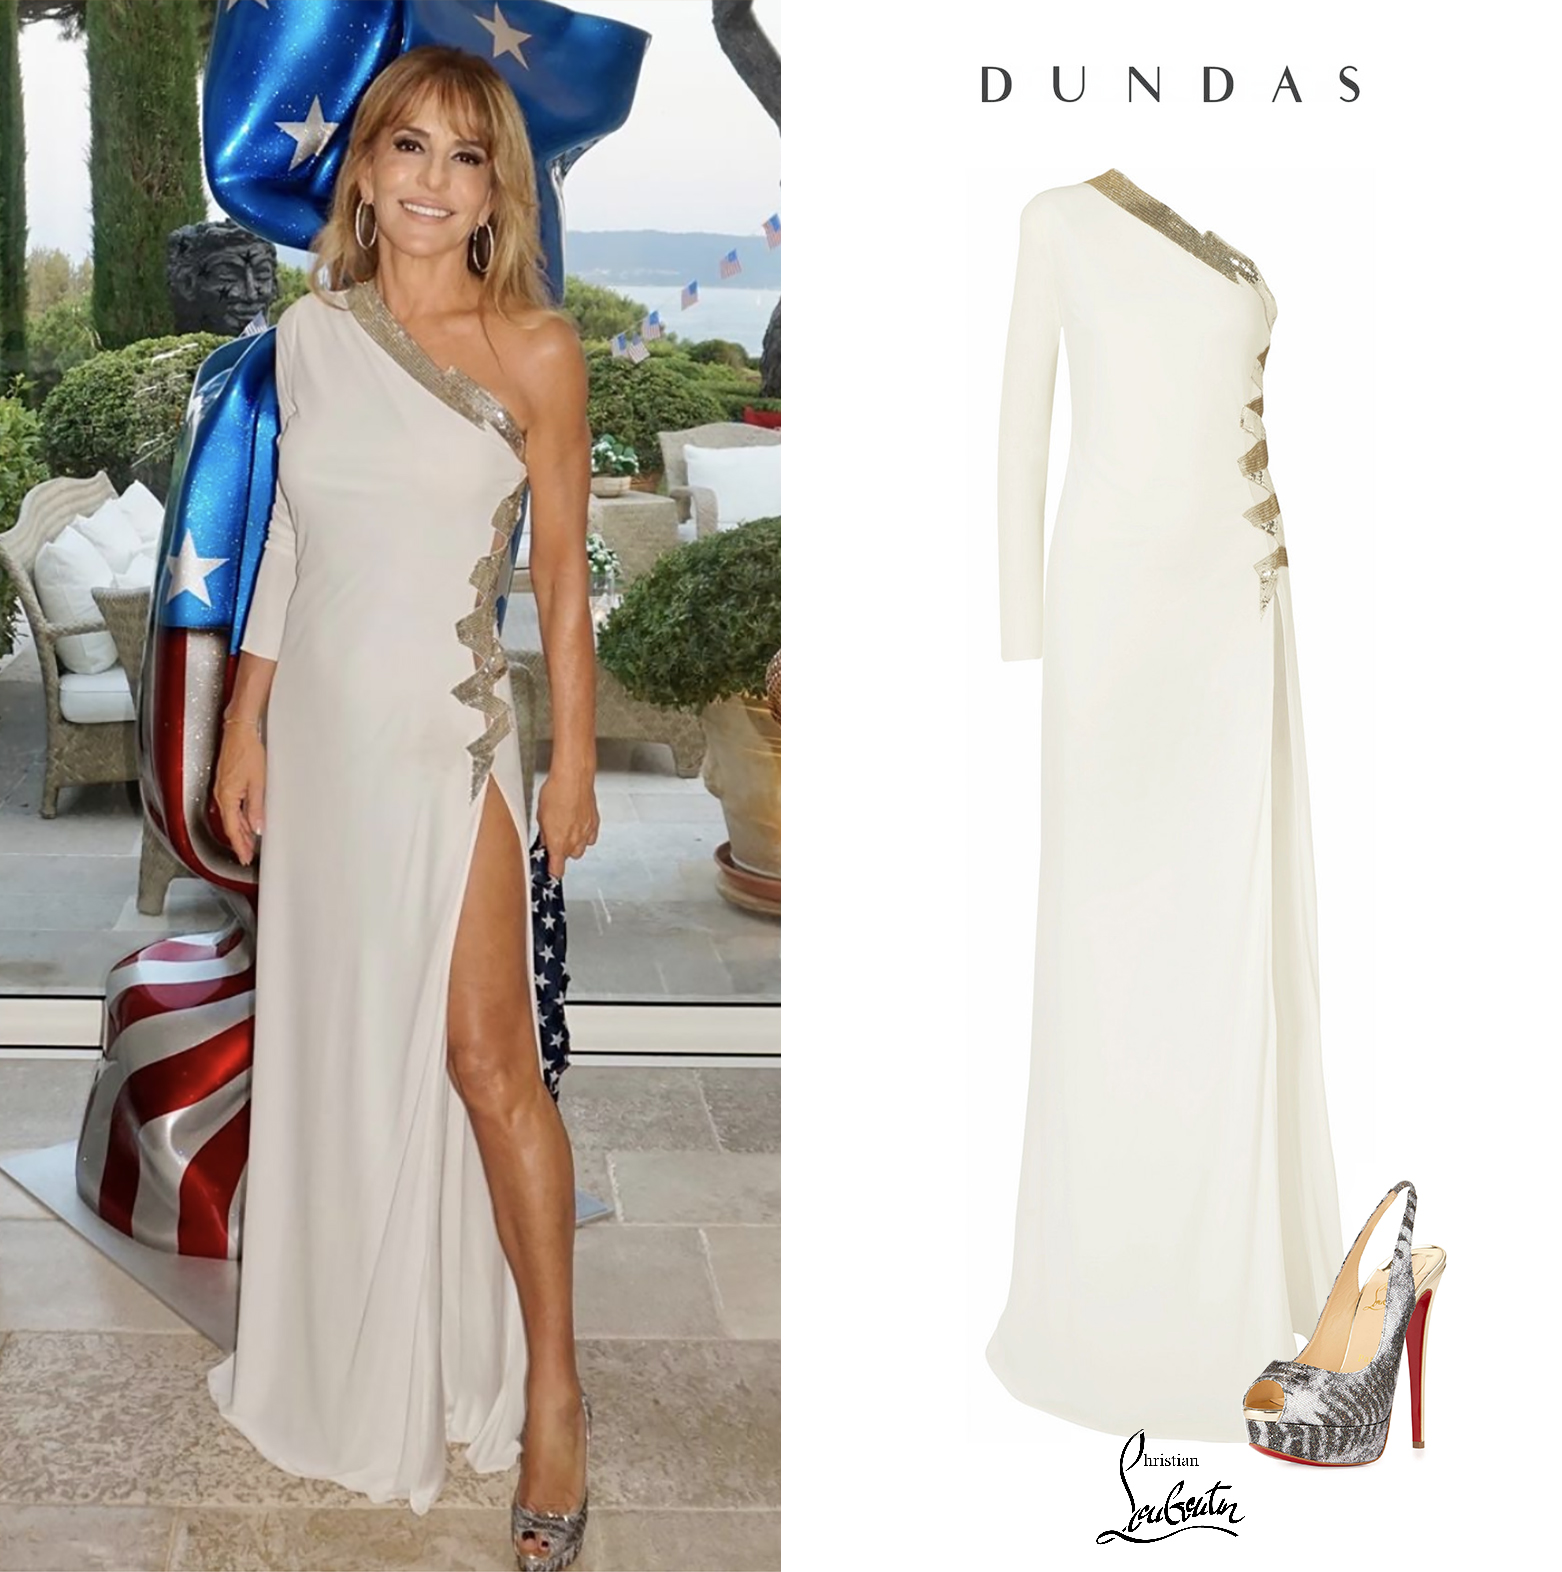 Patricia_della_Giovampaola_Darenberg_One_Shoulder_Embellished_Dress_peter_dundas_louboutin_metallic_lady_peep.jpg